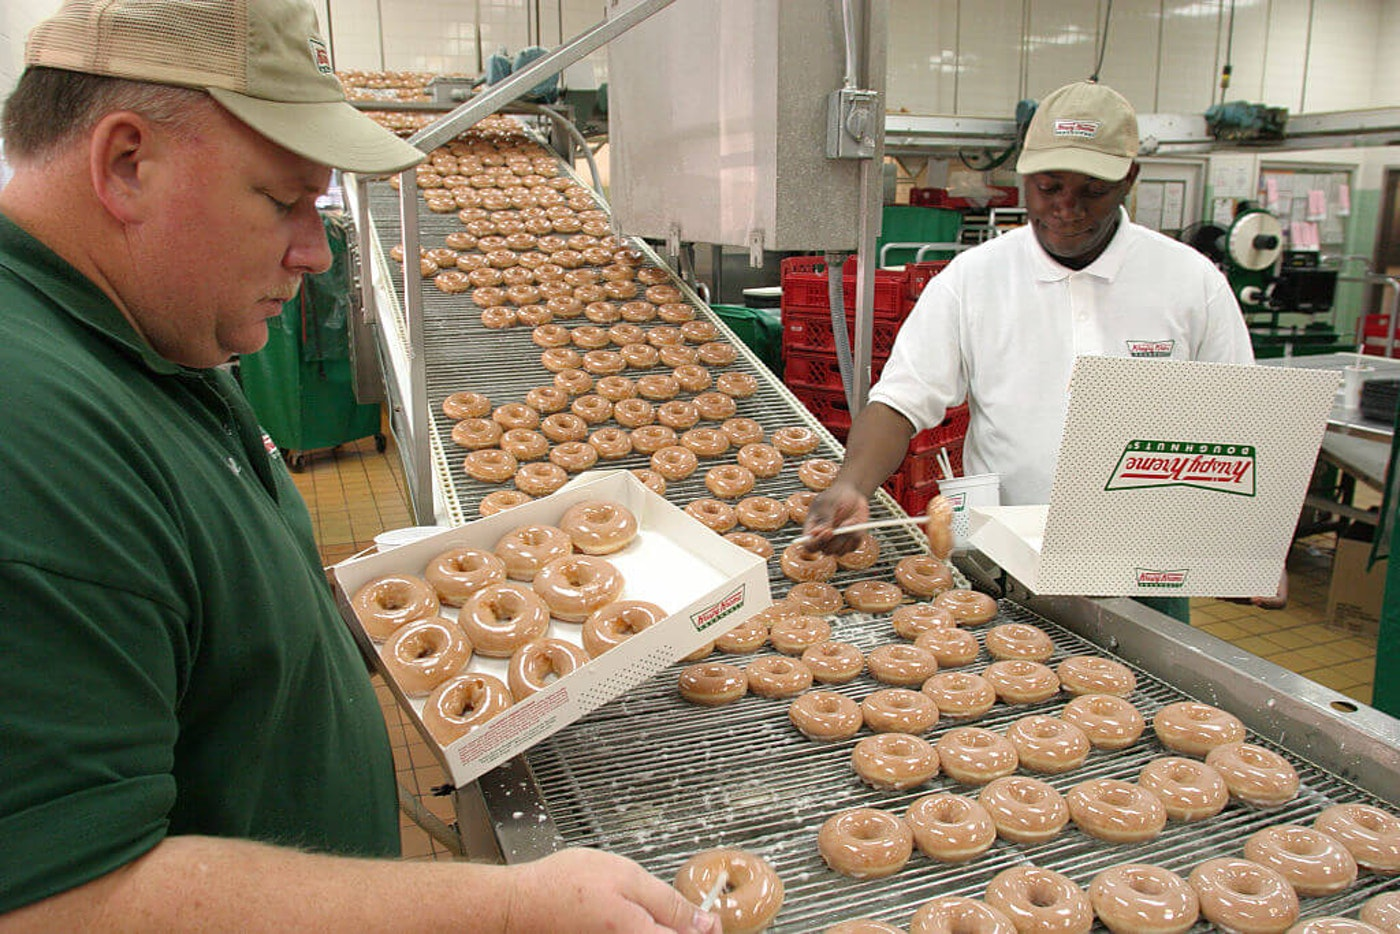 The production line at Krispy Kreme Doughnuts, based out of North Carolina. The famed company is giving away doughnuts to people getting their COVID vaccine. (Photo by: Jeffrey Greenberg/Universal Images Group via Getty Images)